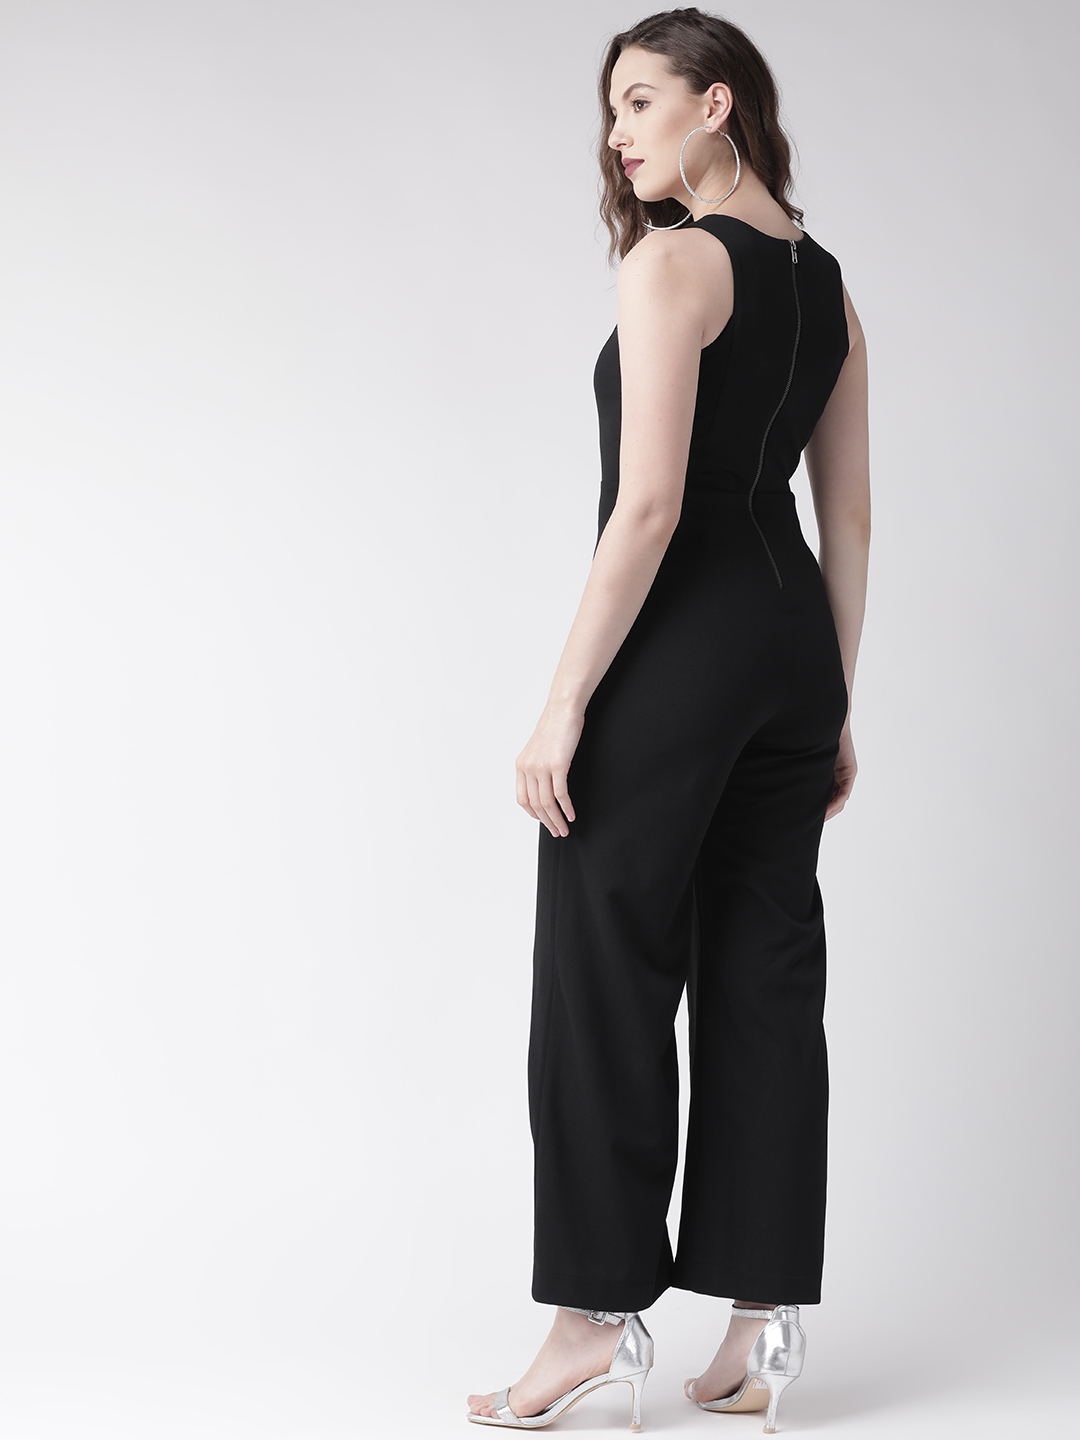 Jumpsuits-Welcome To The Party Jumpsuit5